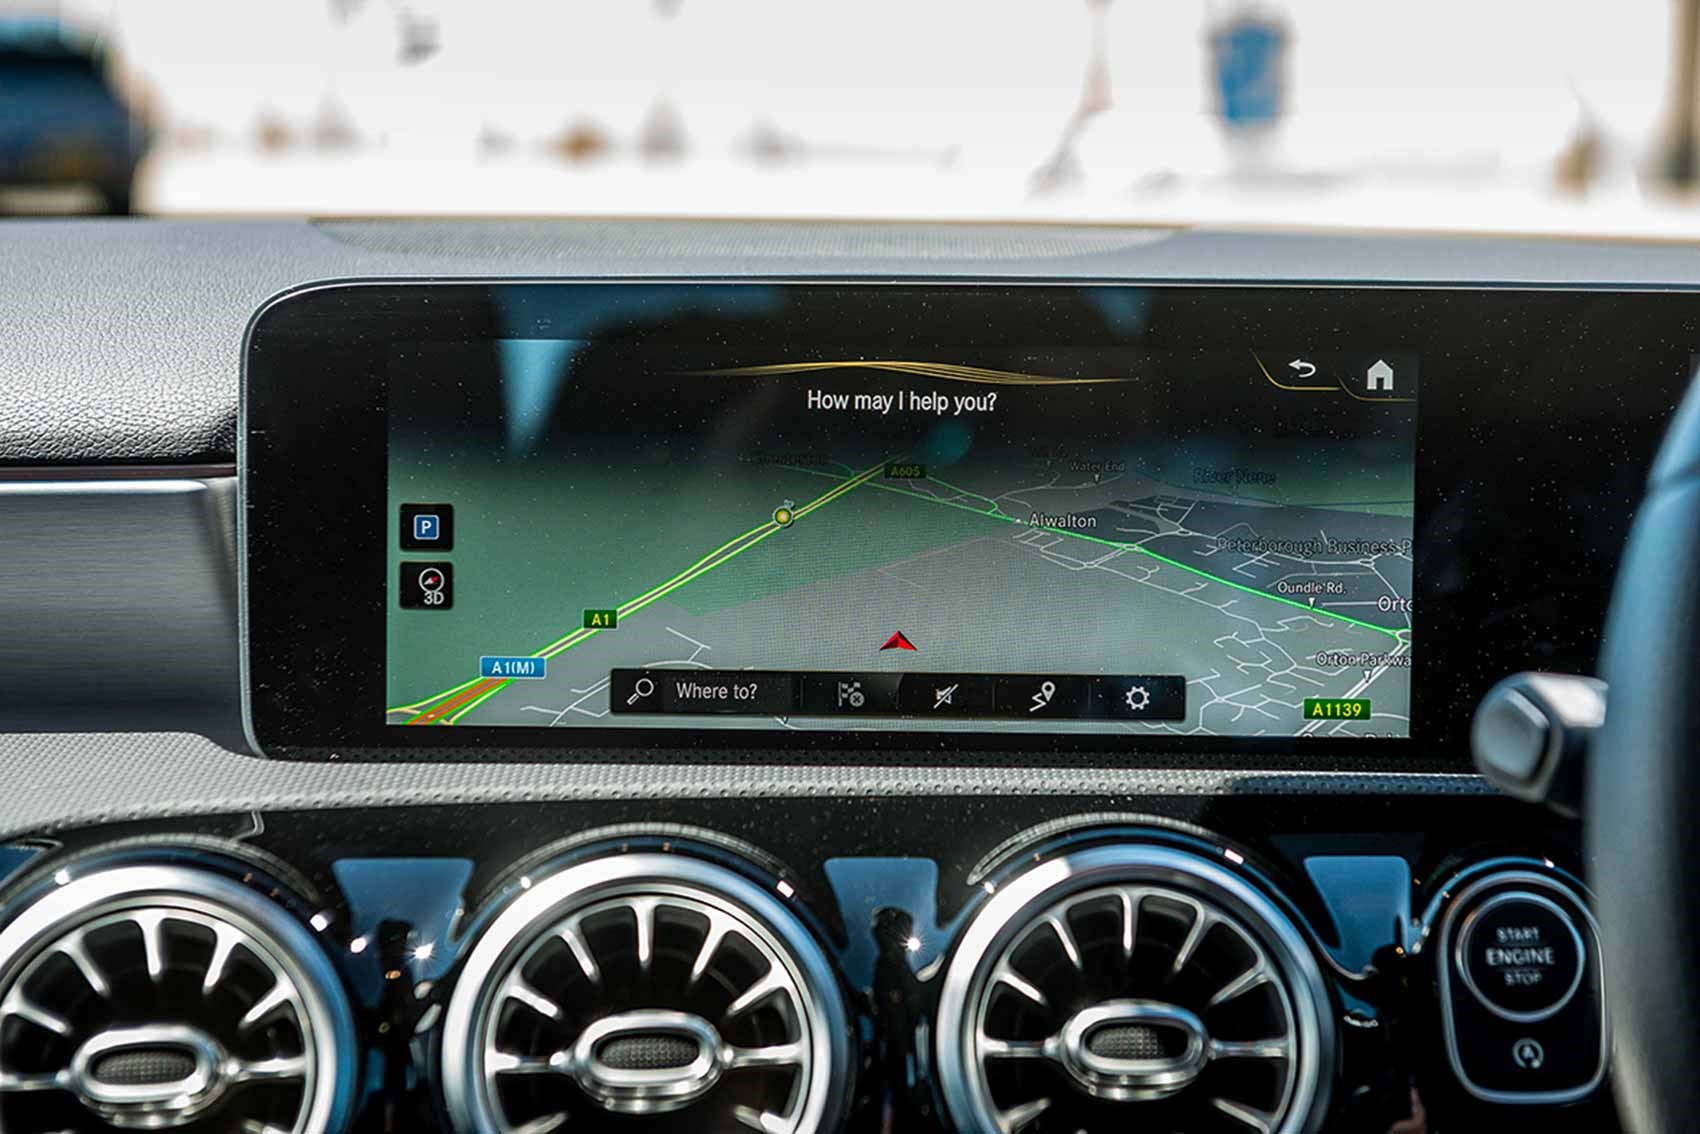 Mercedes A Class Vs Vw Golf Volvo Xc40 Triple Test Review Car Peugeot 308 Fuse Box Layout Augmented Reality And Clever Mapping Bit Of Game Changer For Mbux